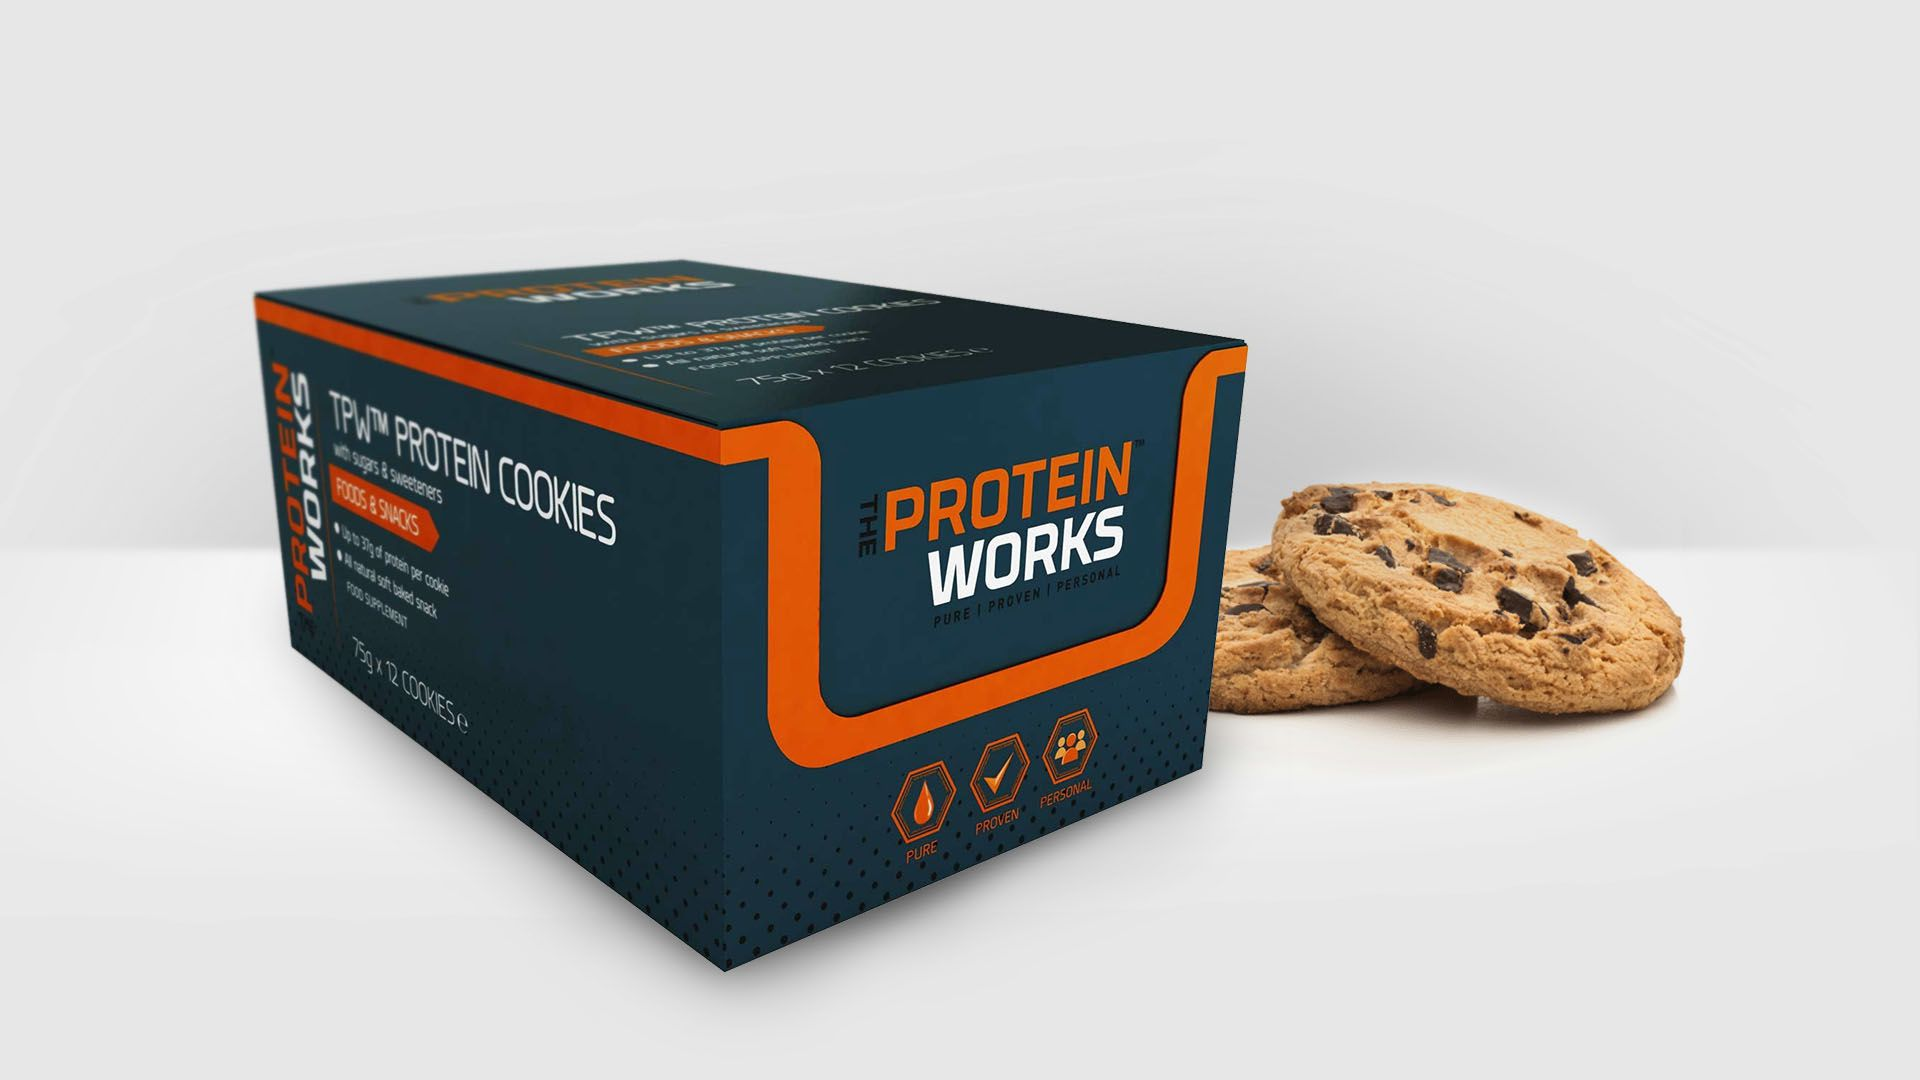 The Protein Works Packaging Design